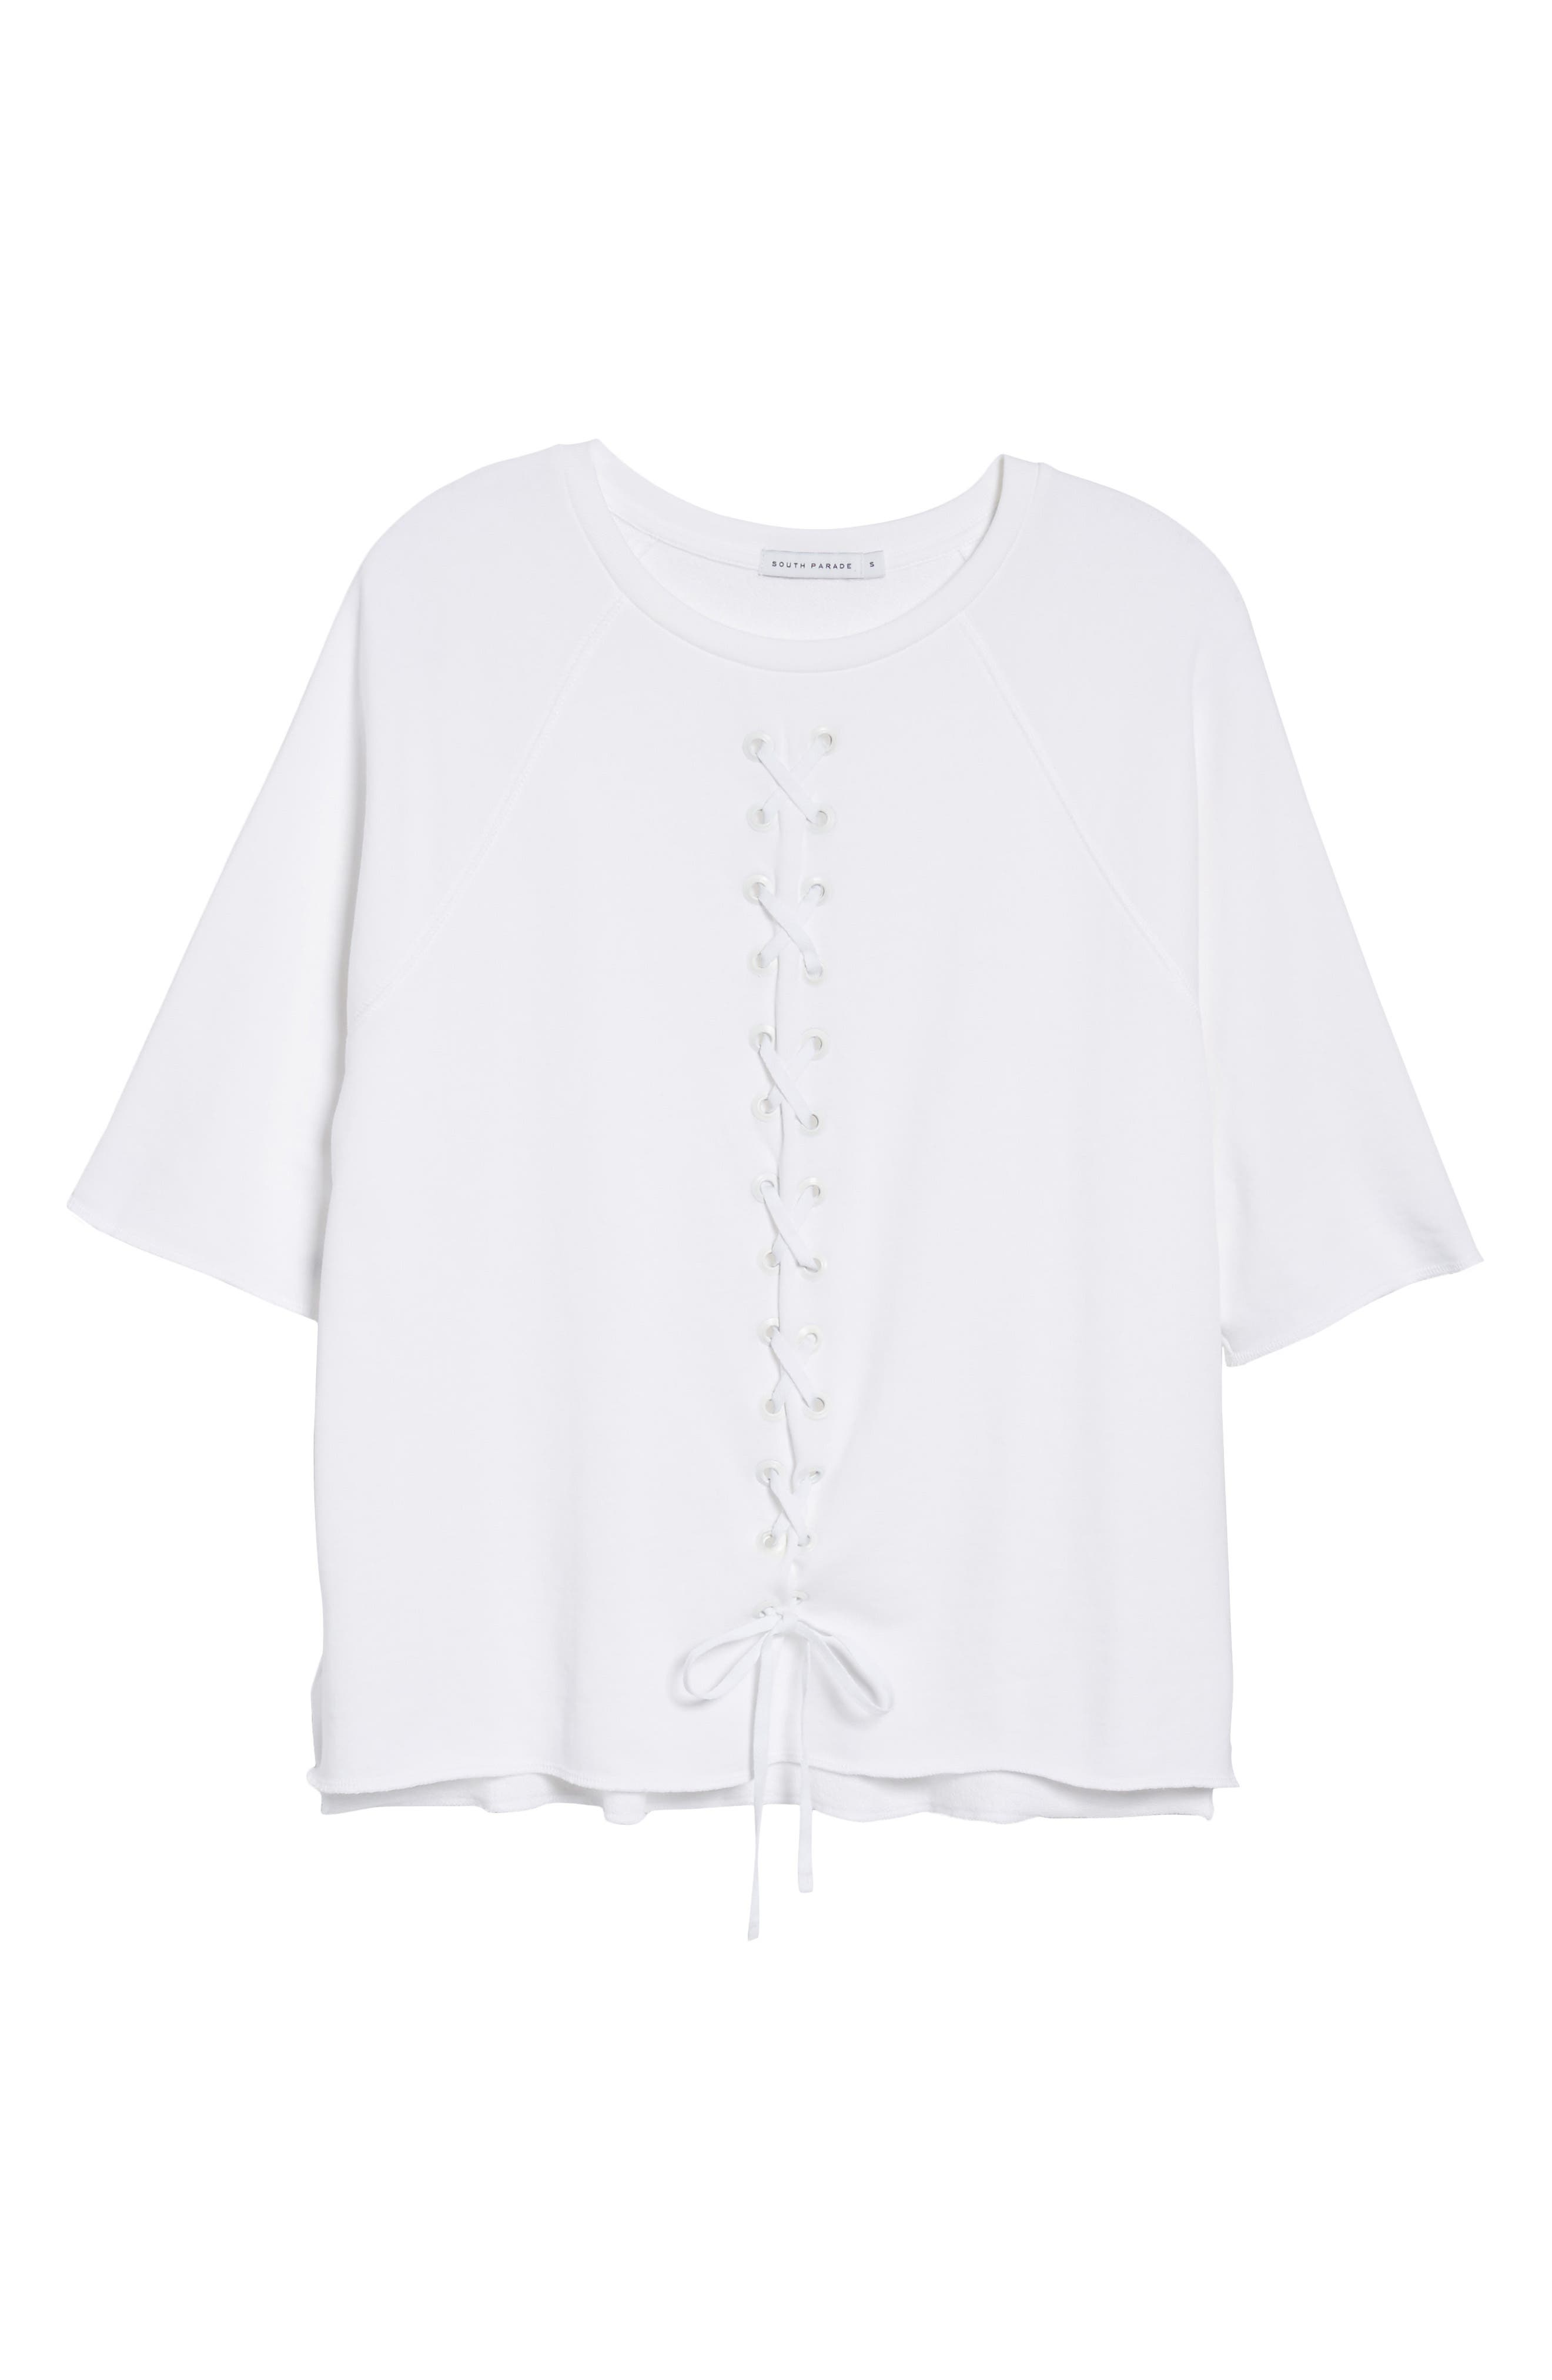 Julie - Vertical Eyelets Terry Top,                             Alternate thumbnail 6, color,                             WHITE